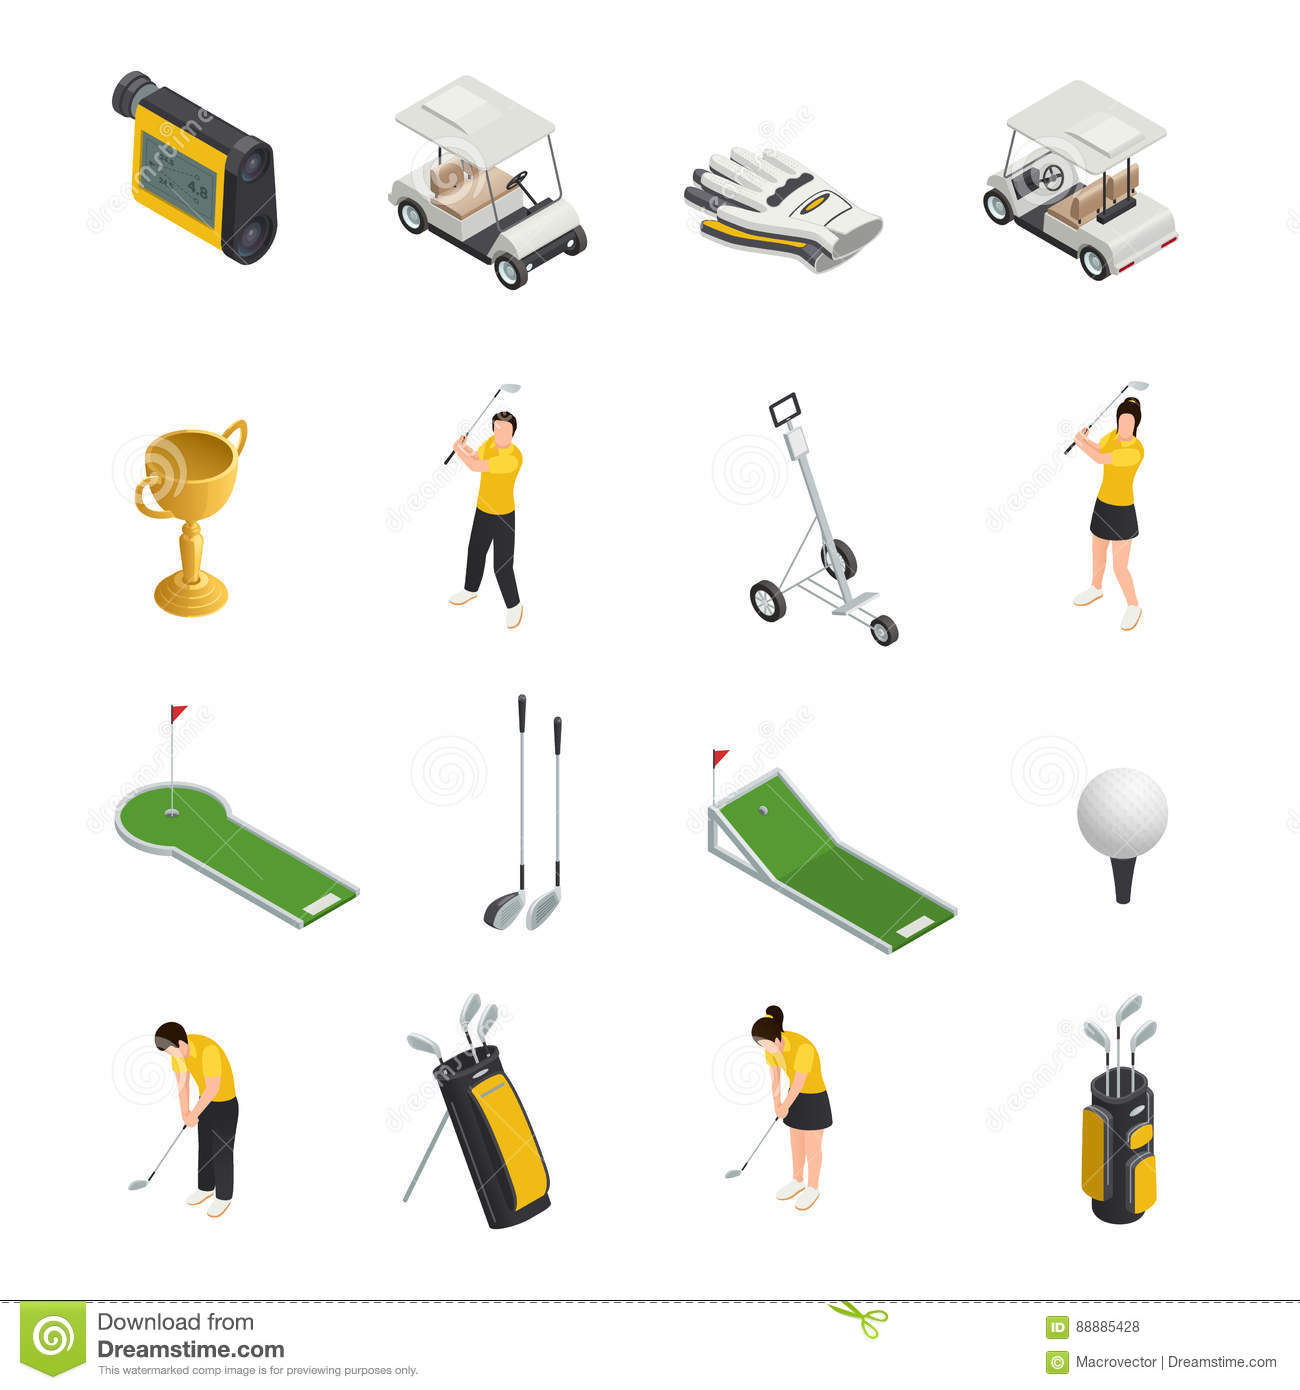 Isometric Exercises Equipment: Flagstick Cartoons, Illustrations & Vector Stock Images